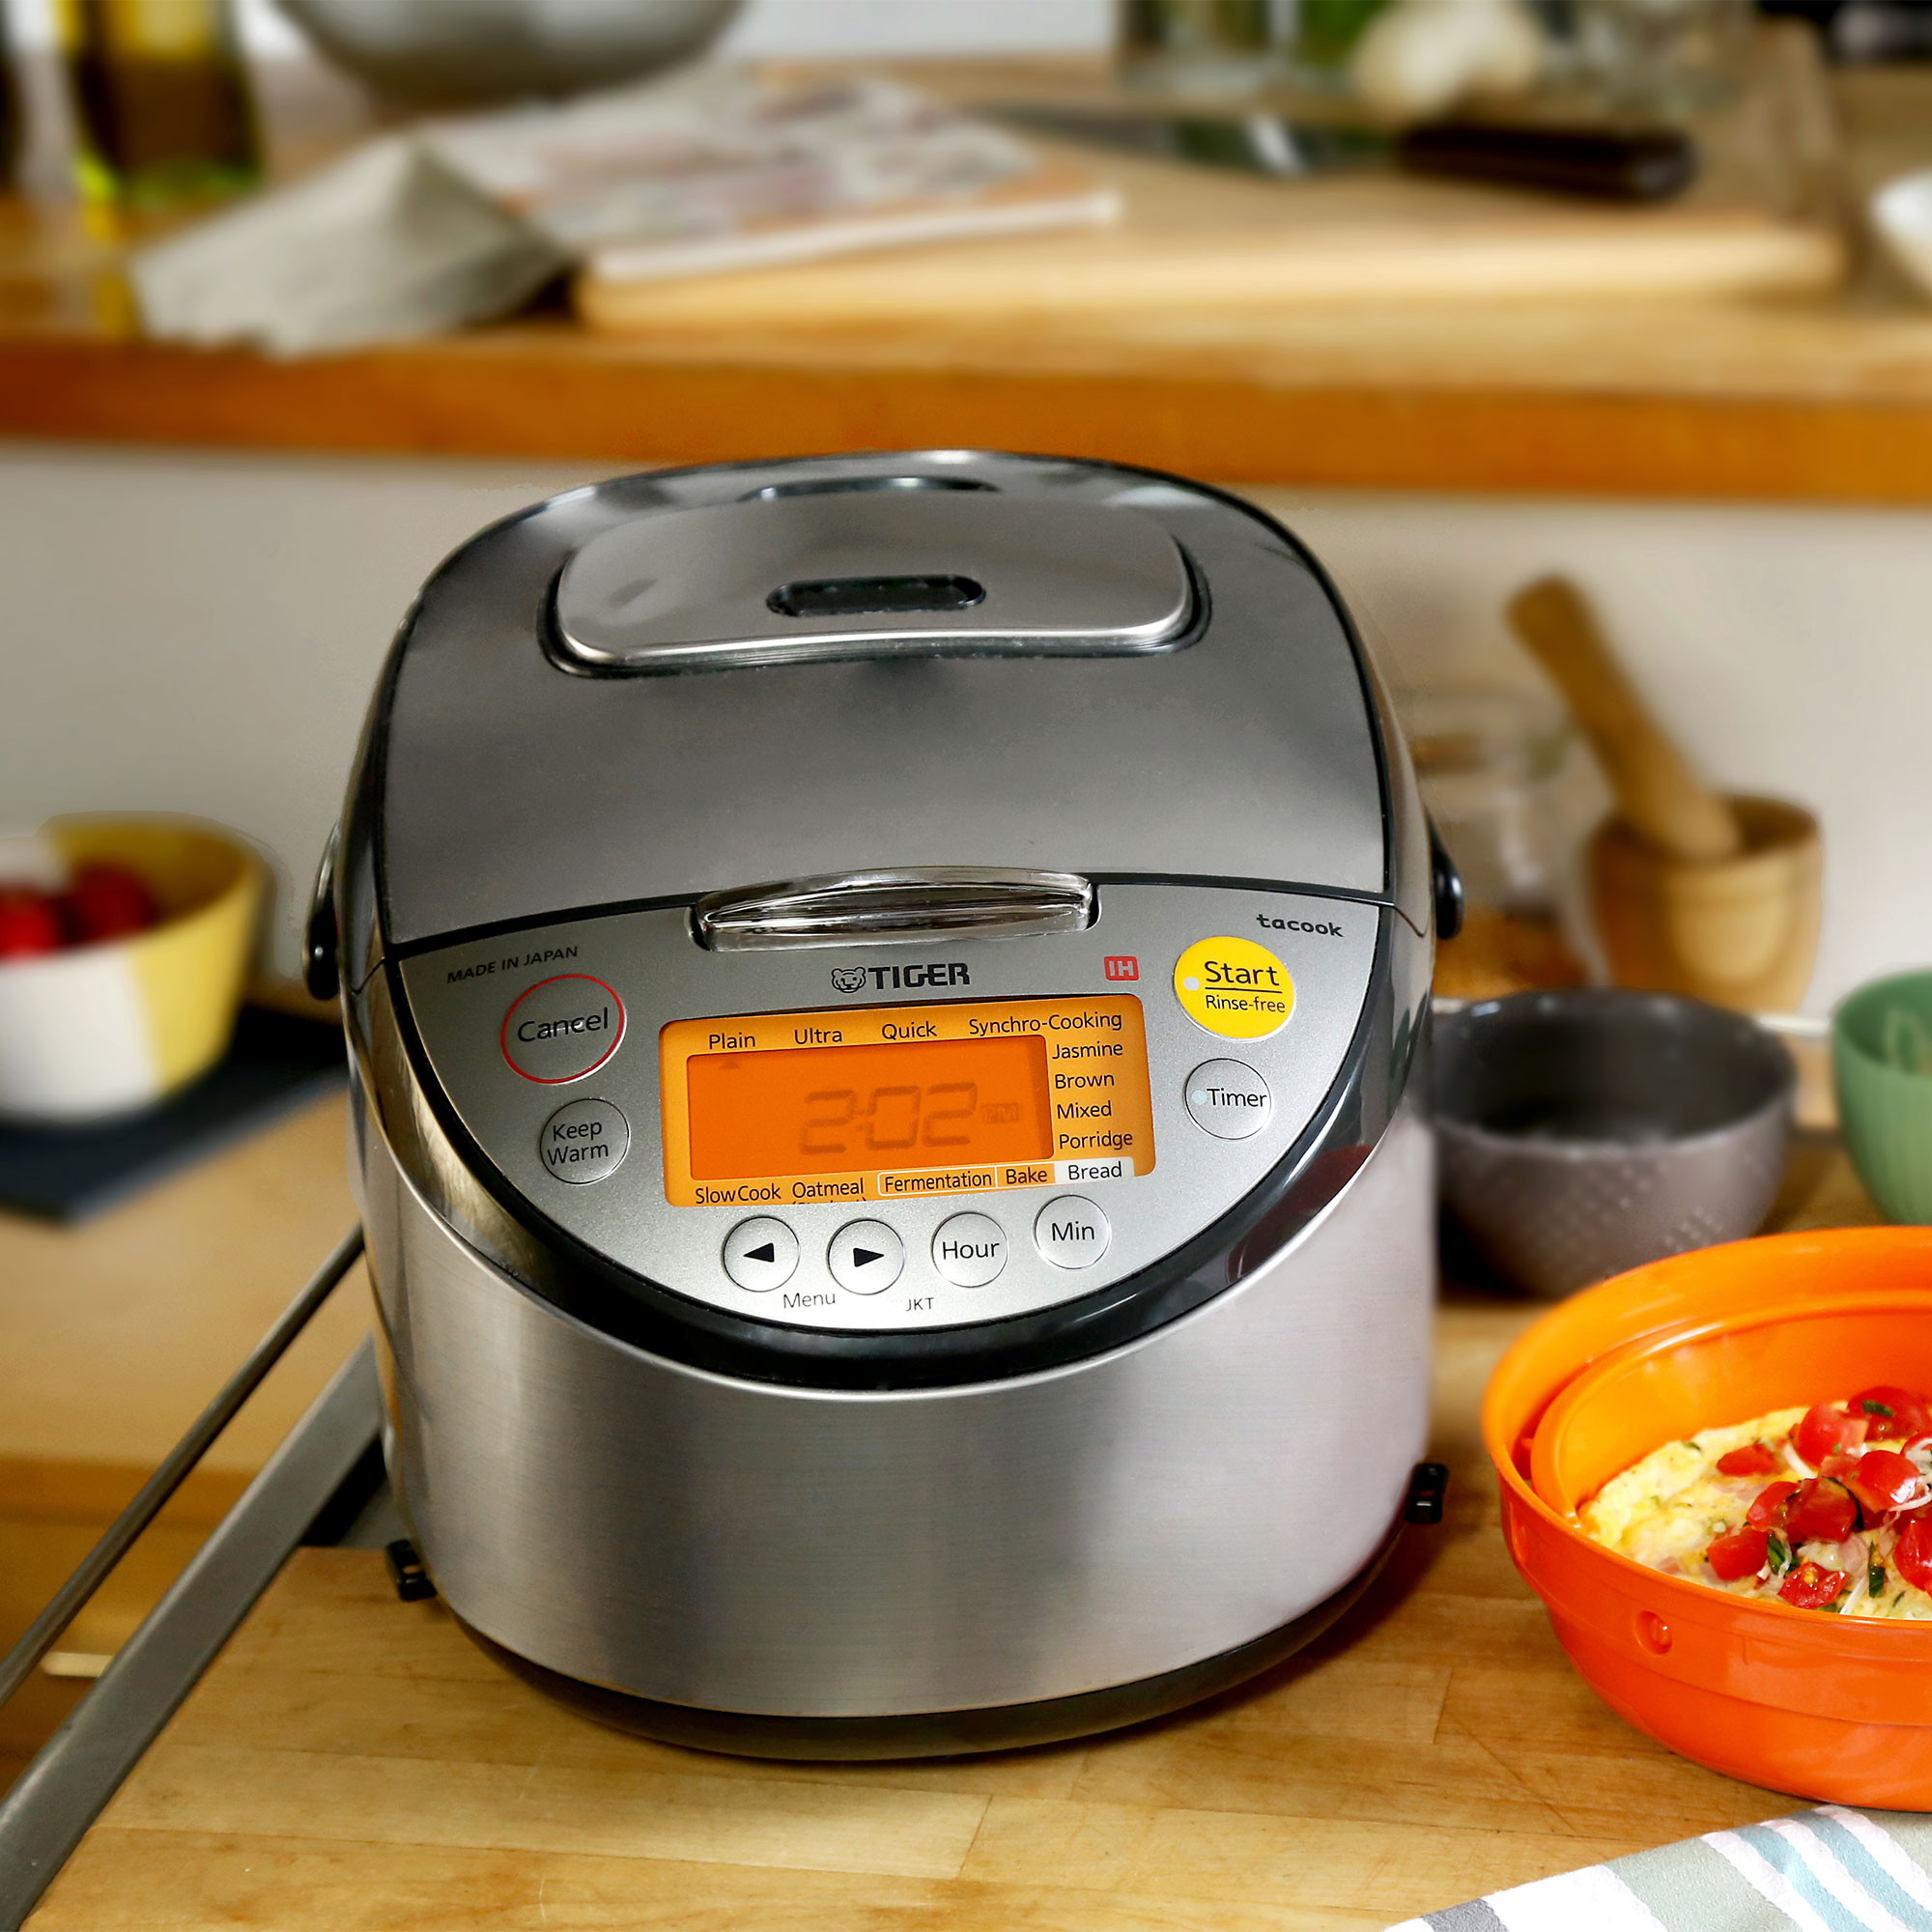 Tiger 5.5-cup Induction Heating Rice Cooker & Warmer